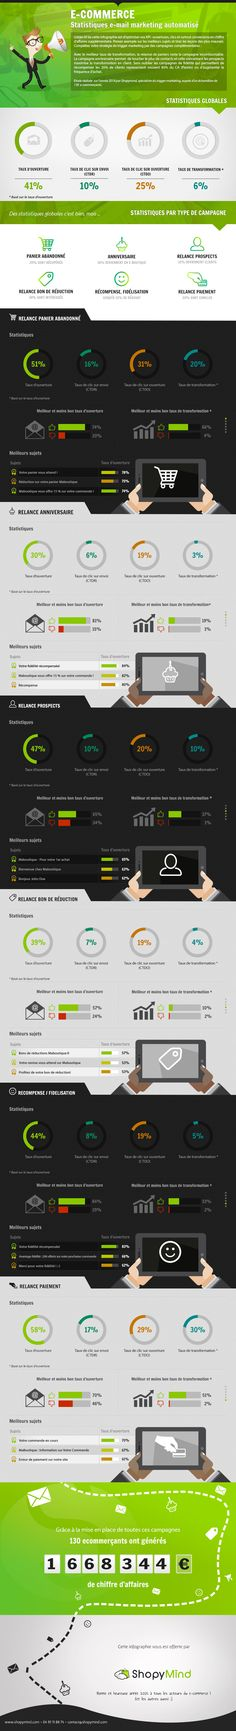 Infographie email markeking.